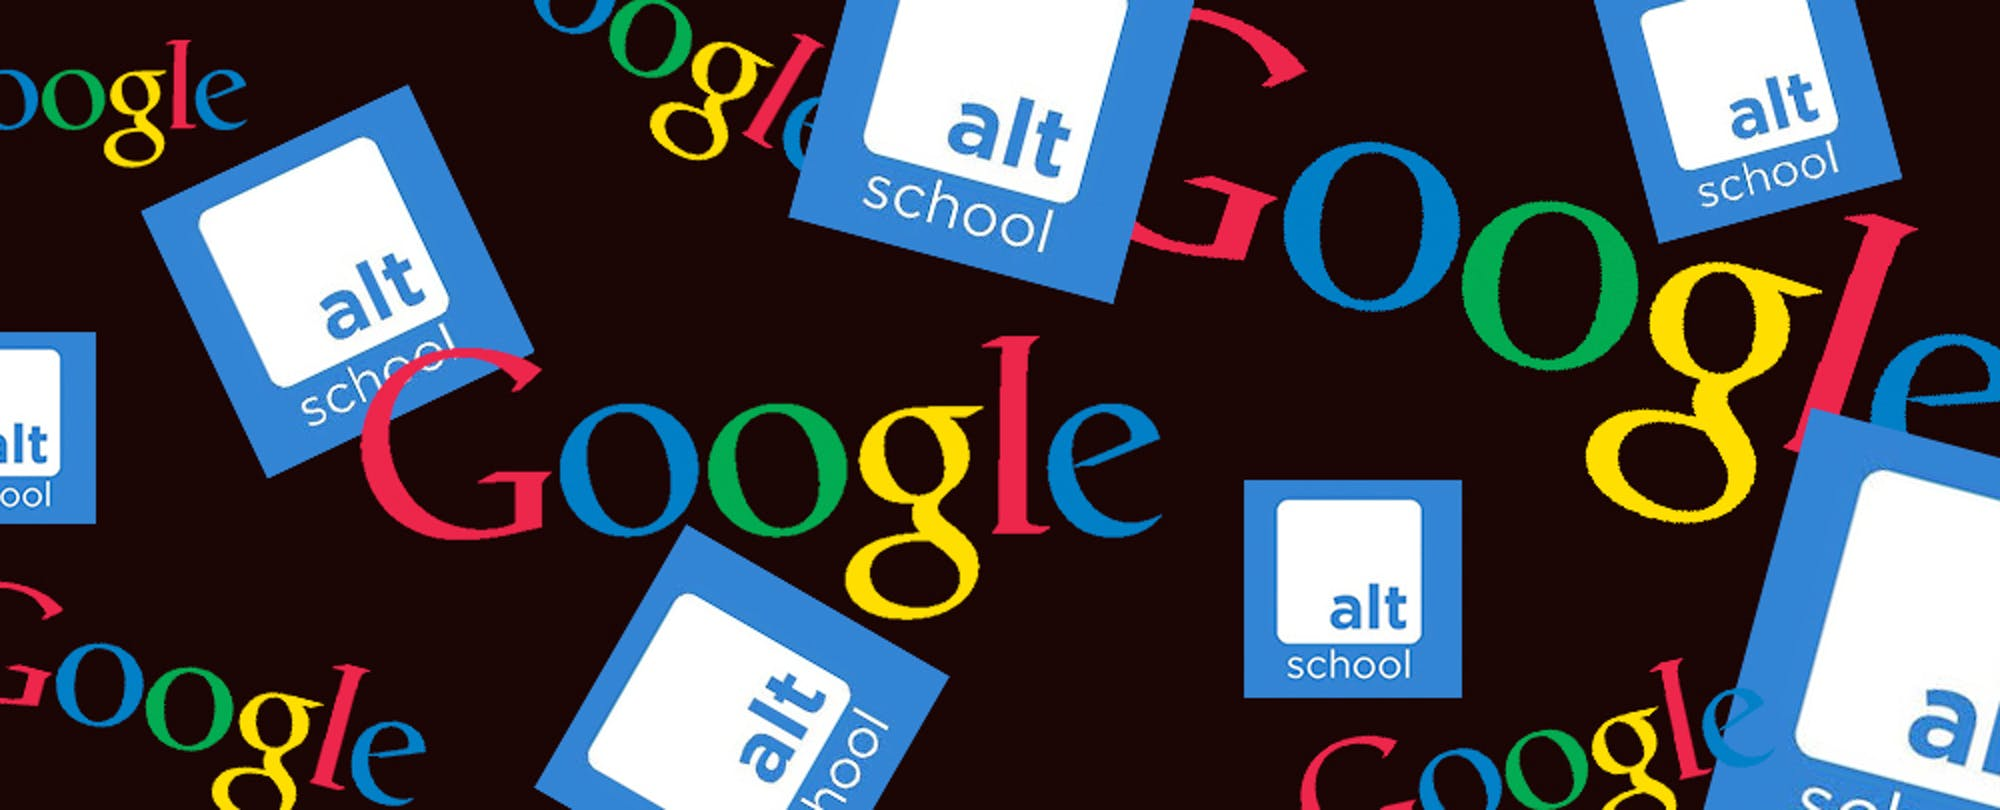 What Will AltSchool Do with $100M? EdSurge Podcast, Week of May 4 - May 8